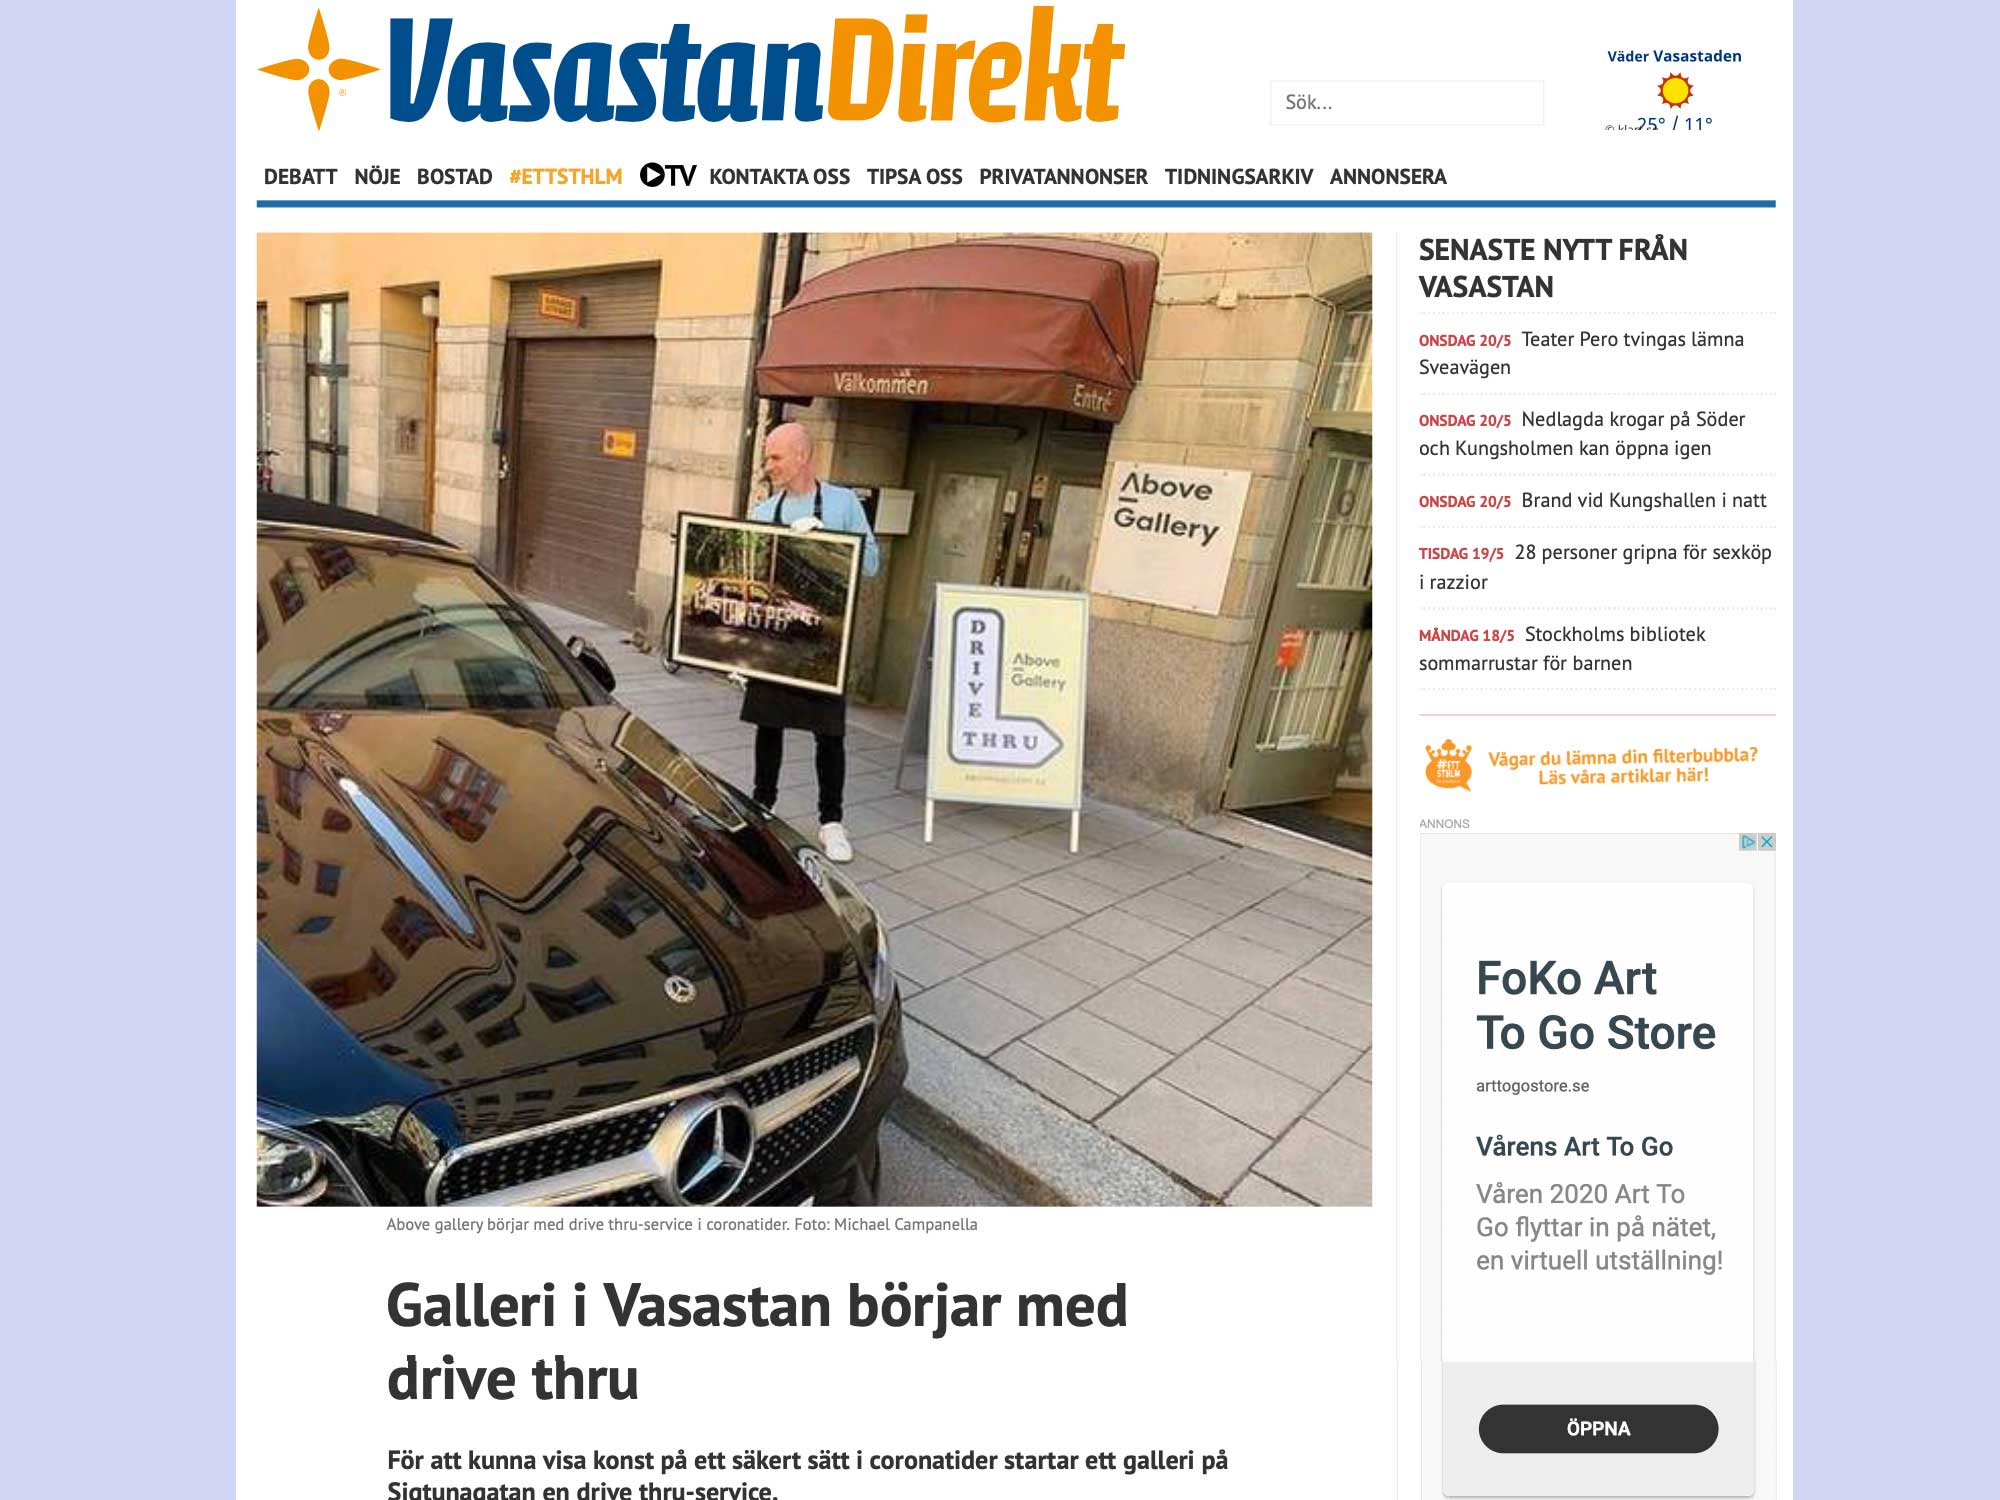 You are currently viewing Vasastan Direkt om Above Gallerys Drive thru service